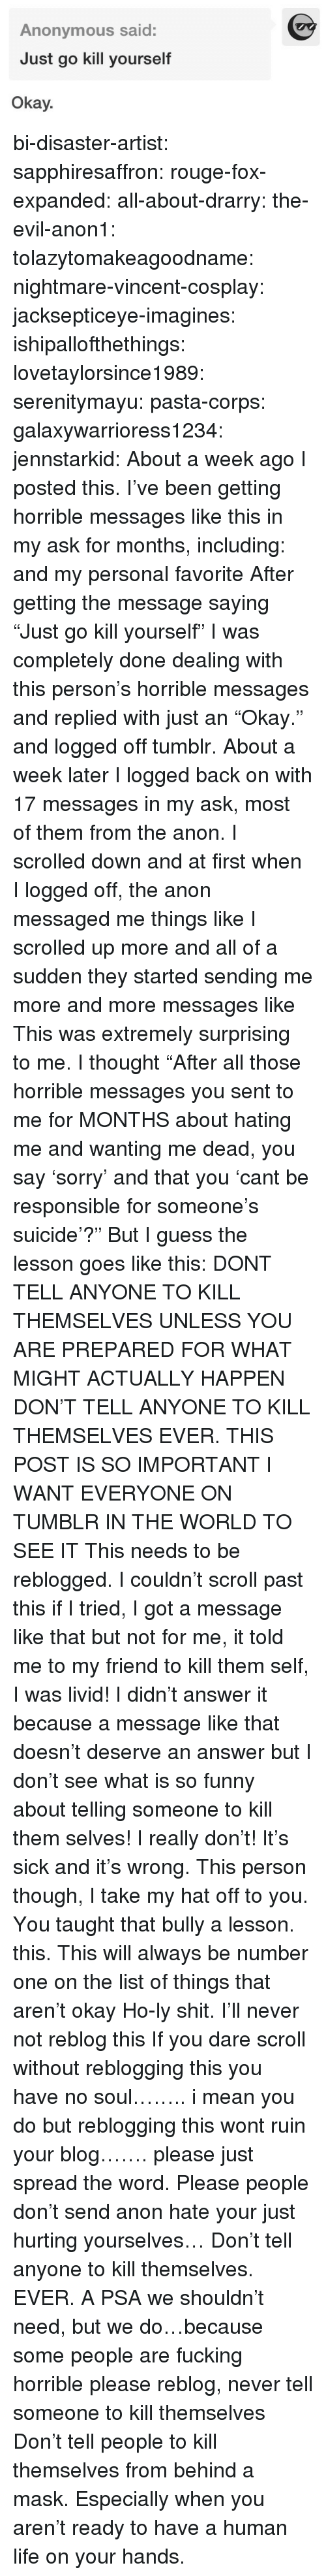 """Fucking, Funny, and Life: Anonymous said:  Just go kill yourself  Okay. bi-disaster-artist:  sapphiresaffron:  rouge-fox-expanded:  all-about-drarry:  the-evil-anon1:  tolazytomakeagoodname:  nightmare-vincent-cosplay:  jacksepticeye-imagines:  ishipallofthethings:  lovetaylorsince1989:  serenitymayu:  pasta-corps:  galaxywarrioress1234:  jennstarkid:  About a week ago I posted this. I've been getting horrible messages like this in my ask for months, including:  and my personal favorite After getting the message saying """"Just go kill yourself"""" I was completely done dealing with this person's horrible messages and replied with just an """"Okay."""" and logged off tumblr. About a week later I logged back on with 17 messages in my ask, most of them from the anon. I scrolled down and at first when I logged off, the anon messaged me things like I scrolled up more and all of a sudden they started sending me more and more messages like This was extremely surprising to me. I thought """"After all those horrible messages you sent to me for MONTHS about hating me and wanting me dead, you say 'sorry' and that you 'cant be responsible for someone's suicide'?"""" But I guess the lesson goes like this: DONT TELL ANYONE TO KILL THEMSELVES UNLESS YOU ARE PREPARED FOR WHAT MIGHT ACTUALLY HAPPEN   DON'T TELL ANYONE TO KILL THEMSELVES EVER.  THIS POST IS SO IMPORTANT I WANT EVERYONE ON TUMBLR IN THE WORLD TO SEE IT  This needs to be reblogged. I couldn't scroll past this if I tried, I got a message like that but not for me, it told me to my friend to kill them self, I was livid! I didn't answer it because a message like that doesn't deserve an answer but I don't see what is so funny about telling someone to kill them selves! I really don't! It's sick and it's wrong. This person though, I take my hat off to you. You taught that bully a lesson.  this.  This will always be number one on the list of things that aren't okay  Ho-ly shit.  I'll never not reblog this  If you dare scroll without reblogging"""